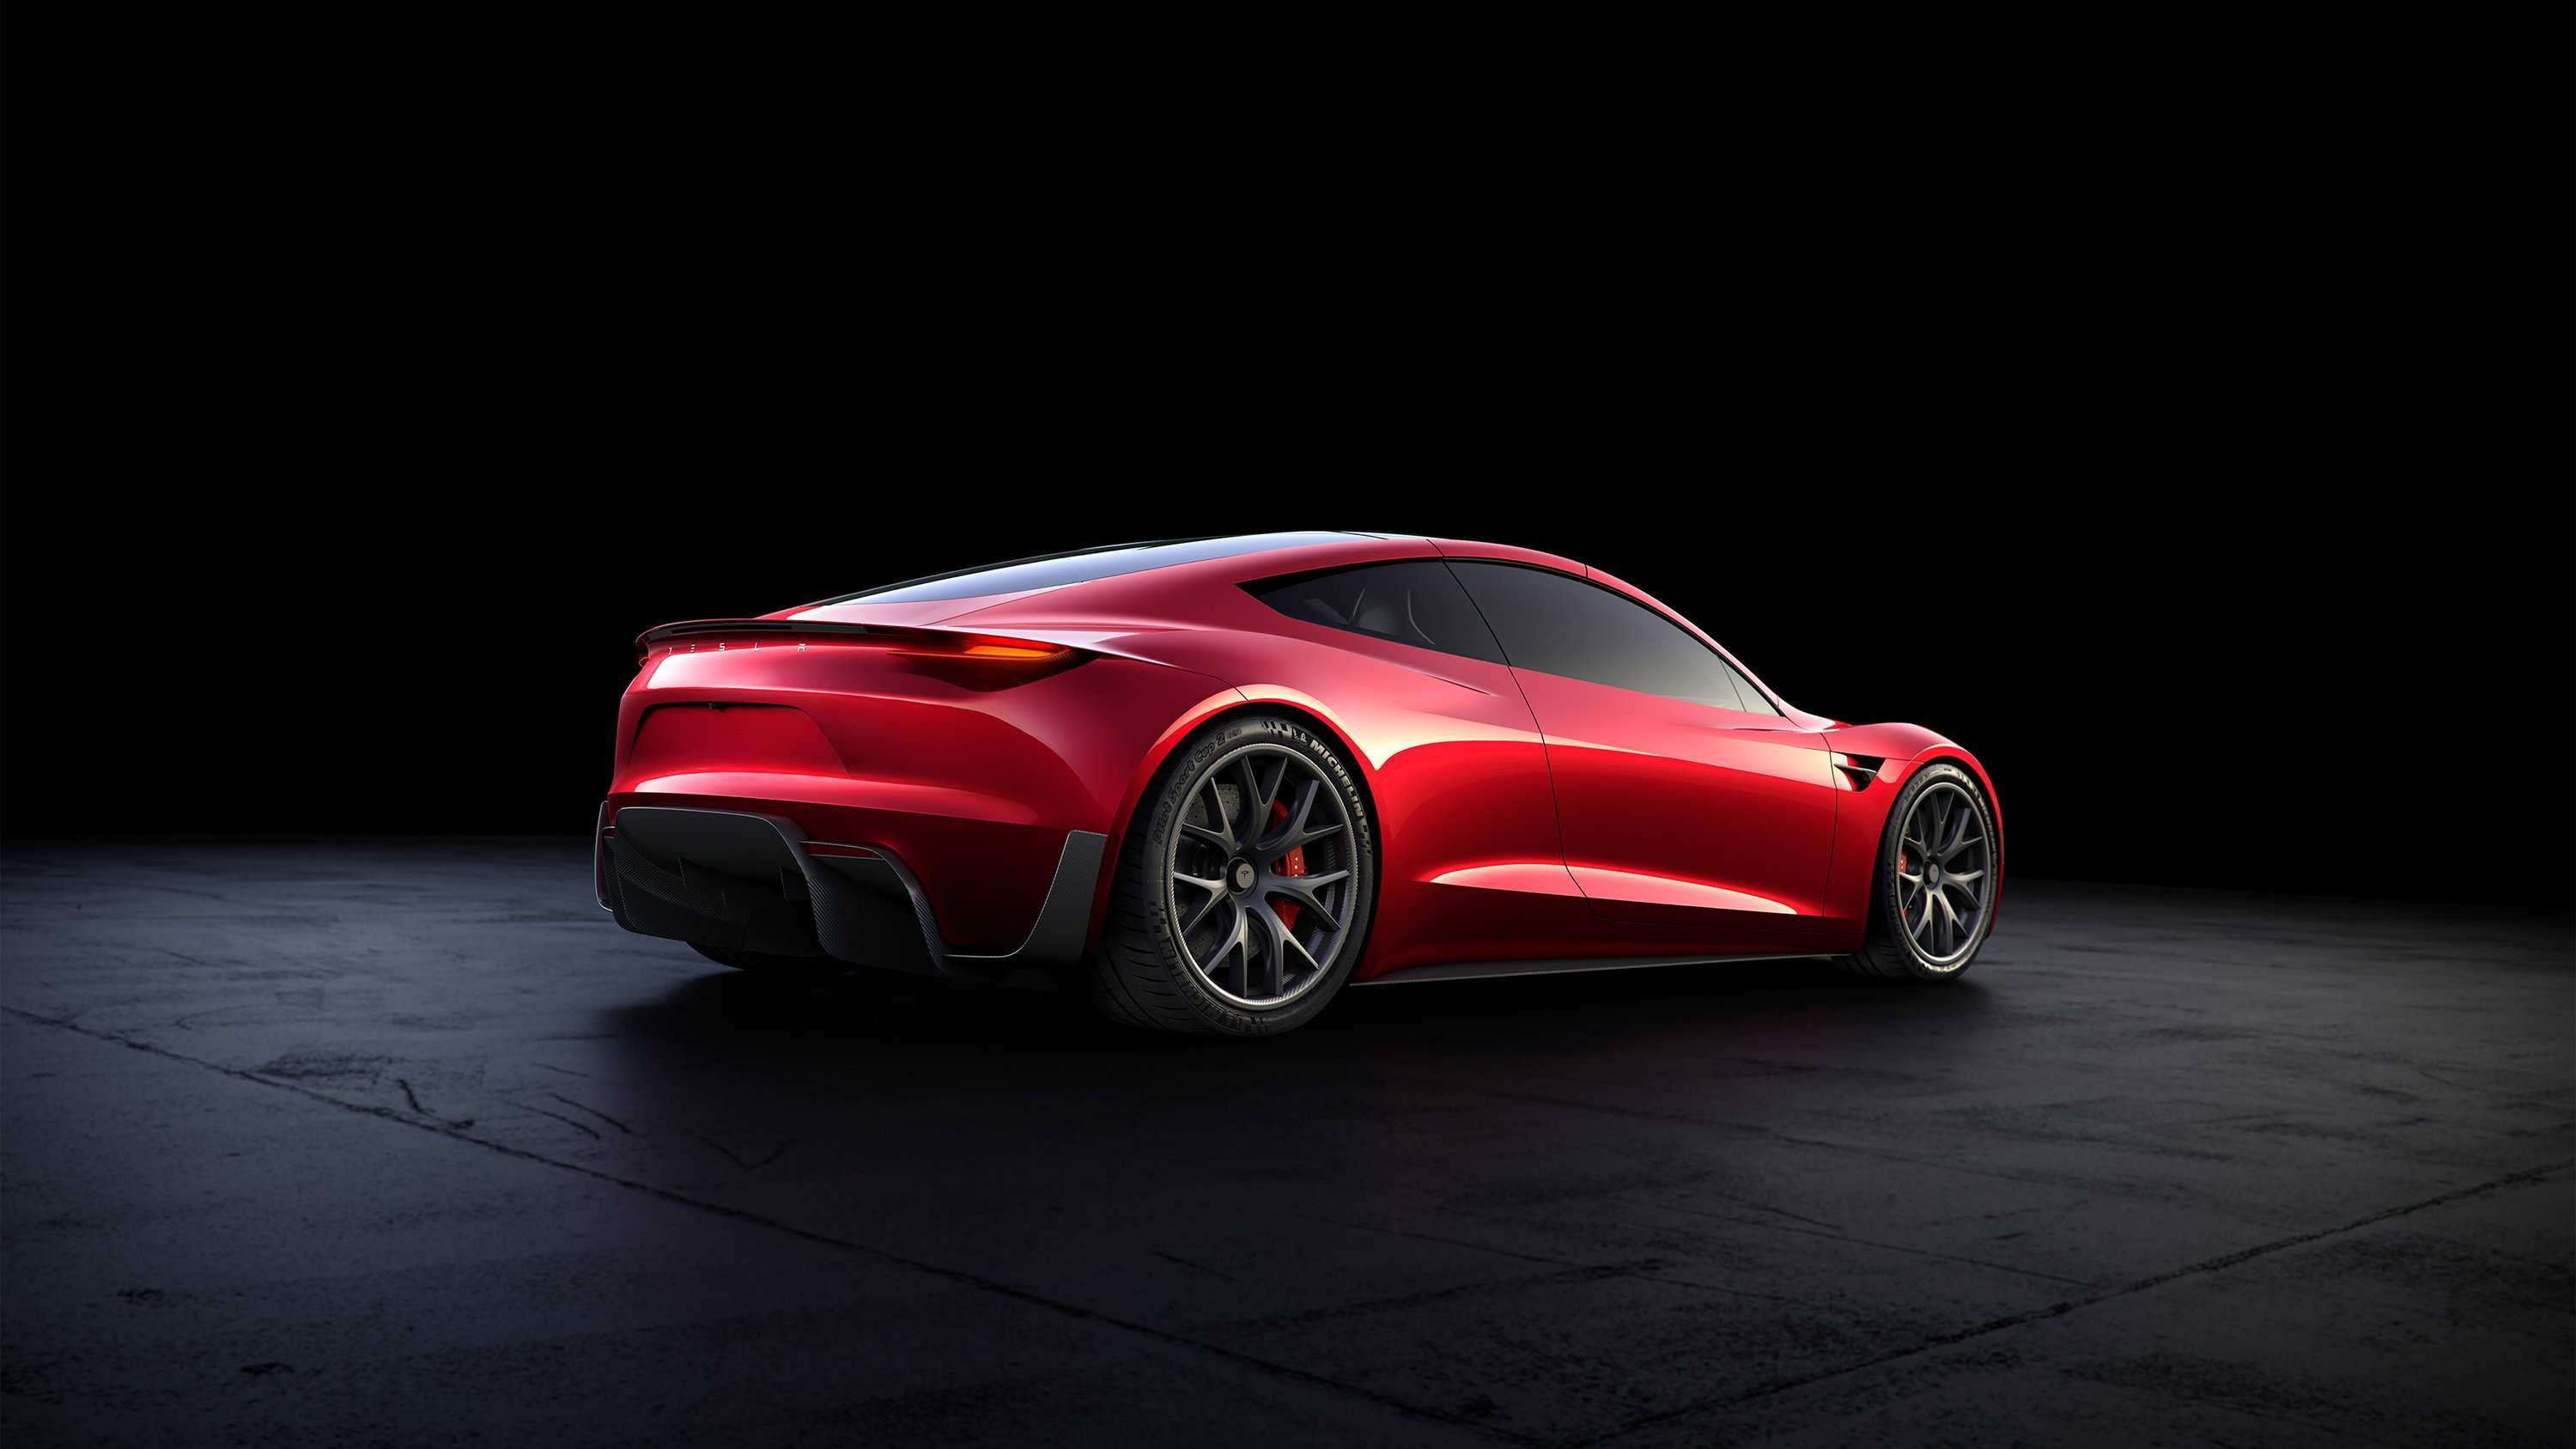 94 New 2020 Tesla Roadster Weight 3 Images